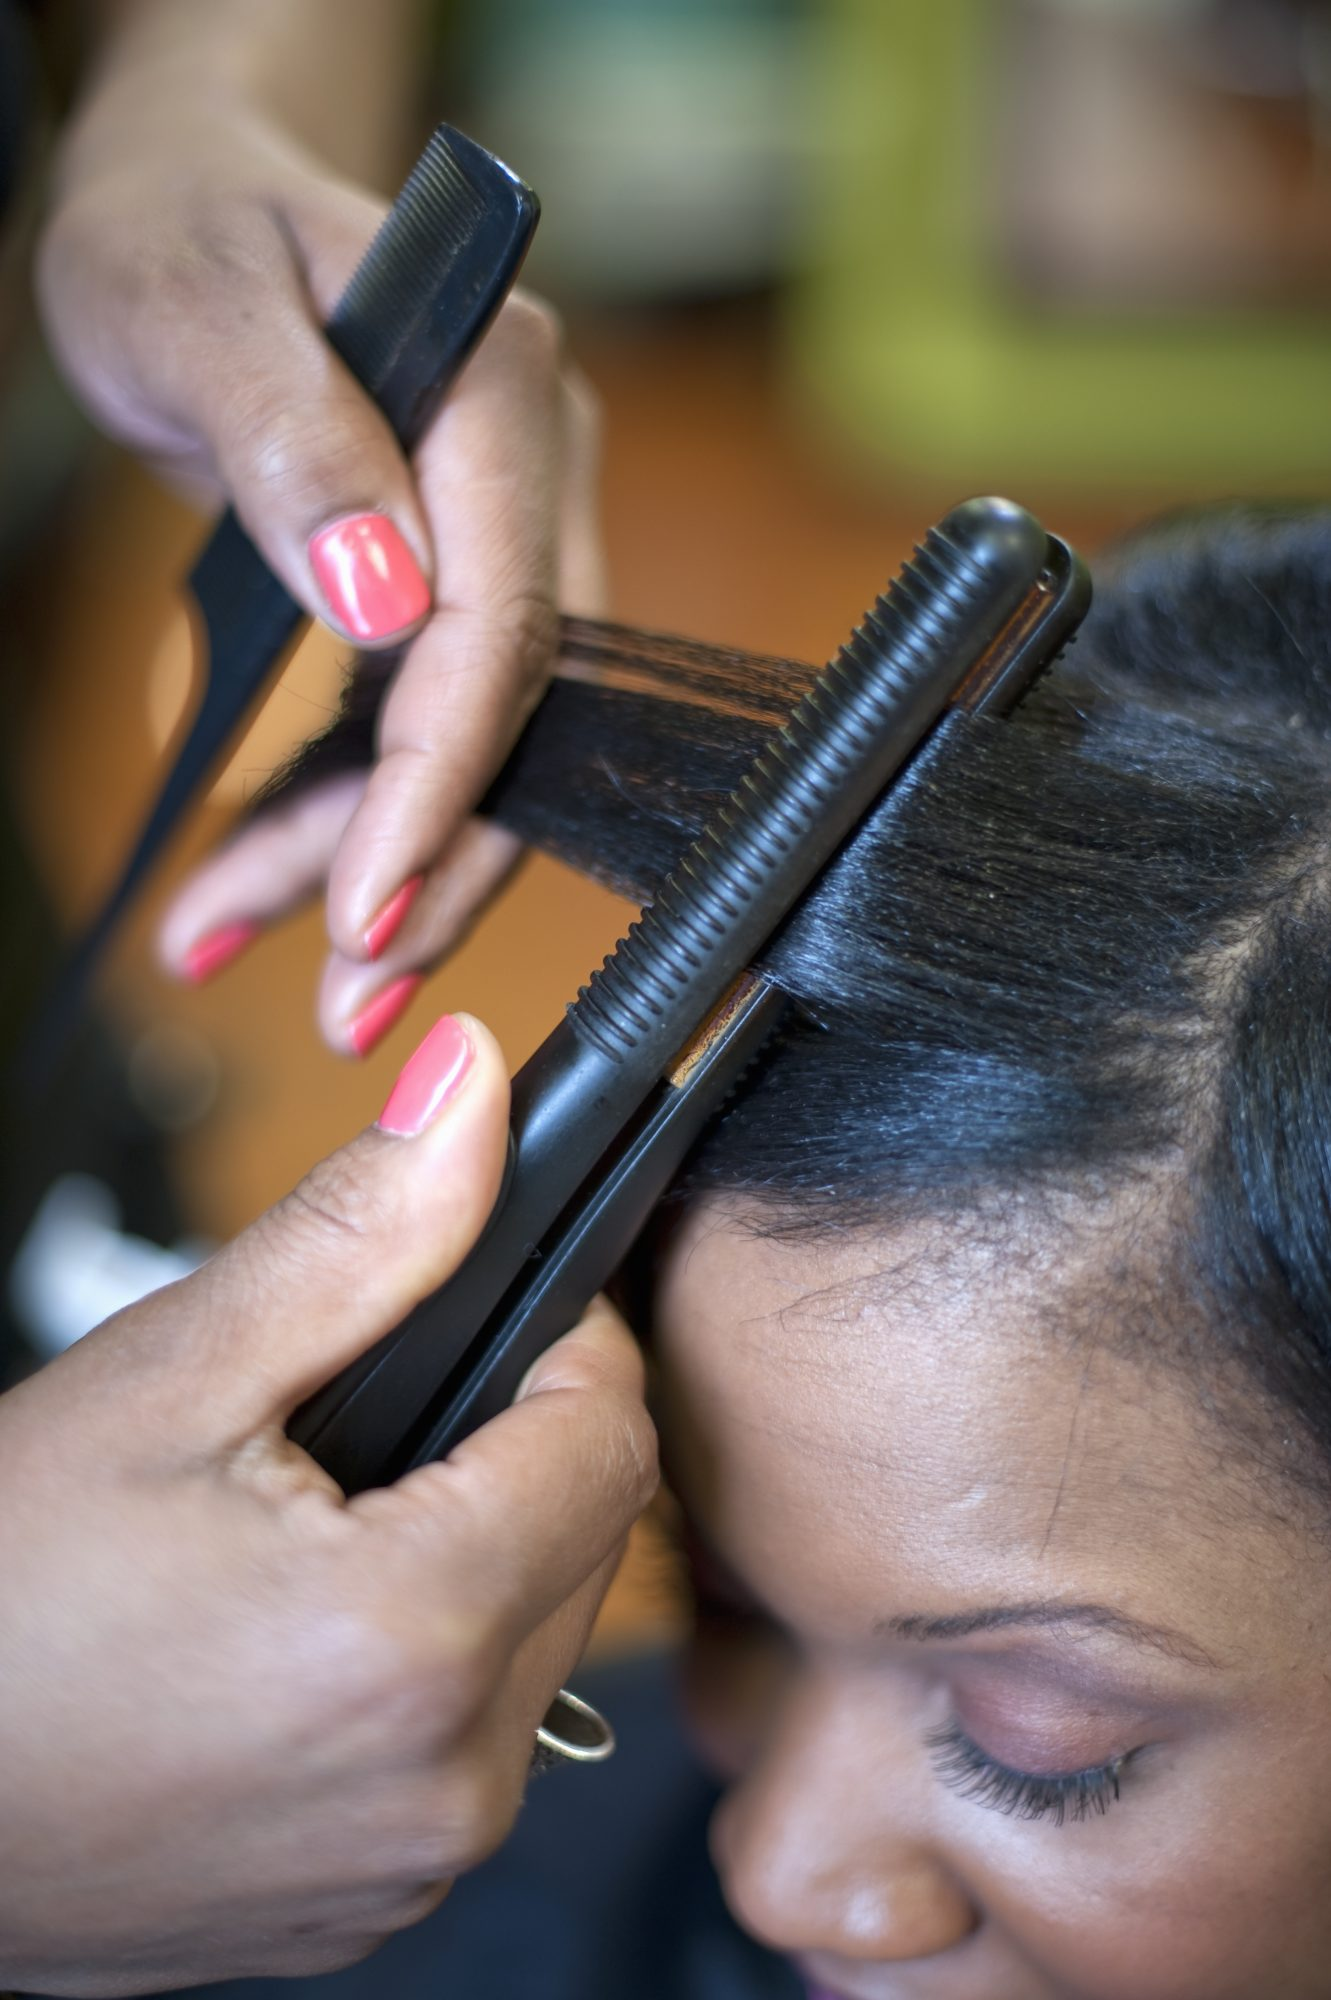 Myth: Hair straighteners cause breast cancer in African-American women.